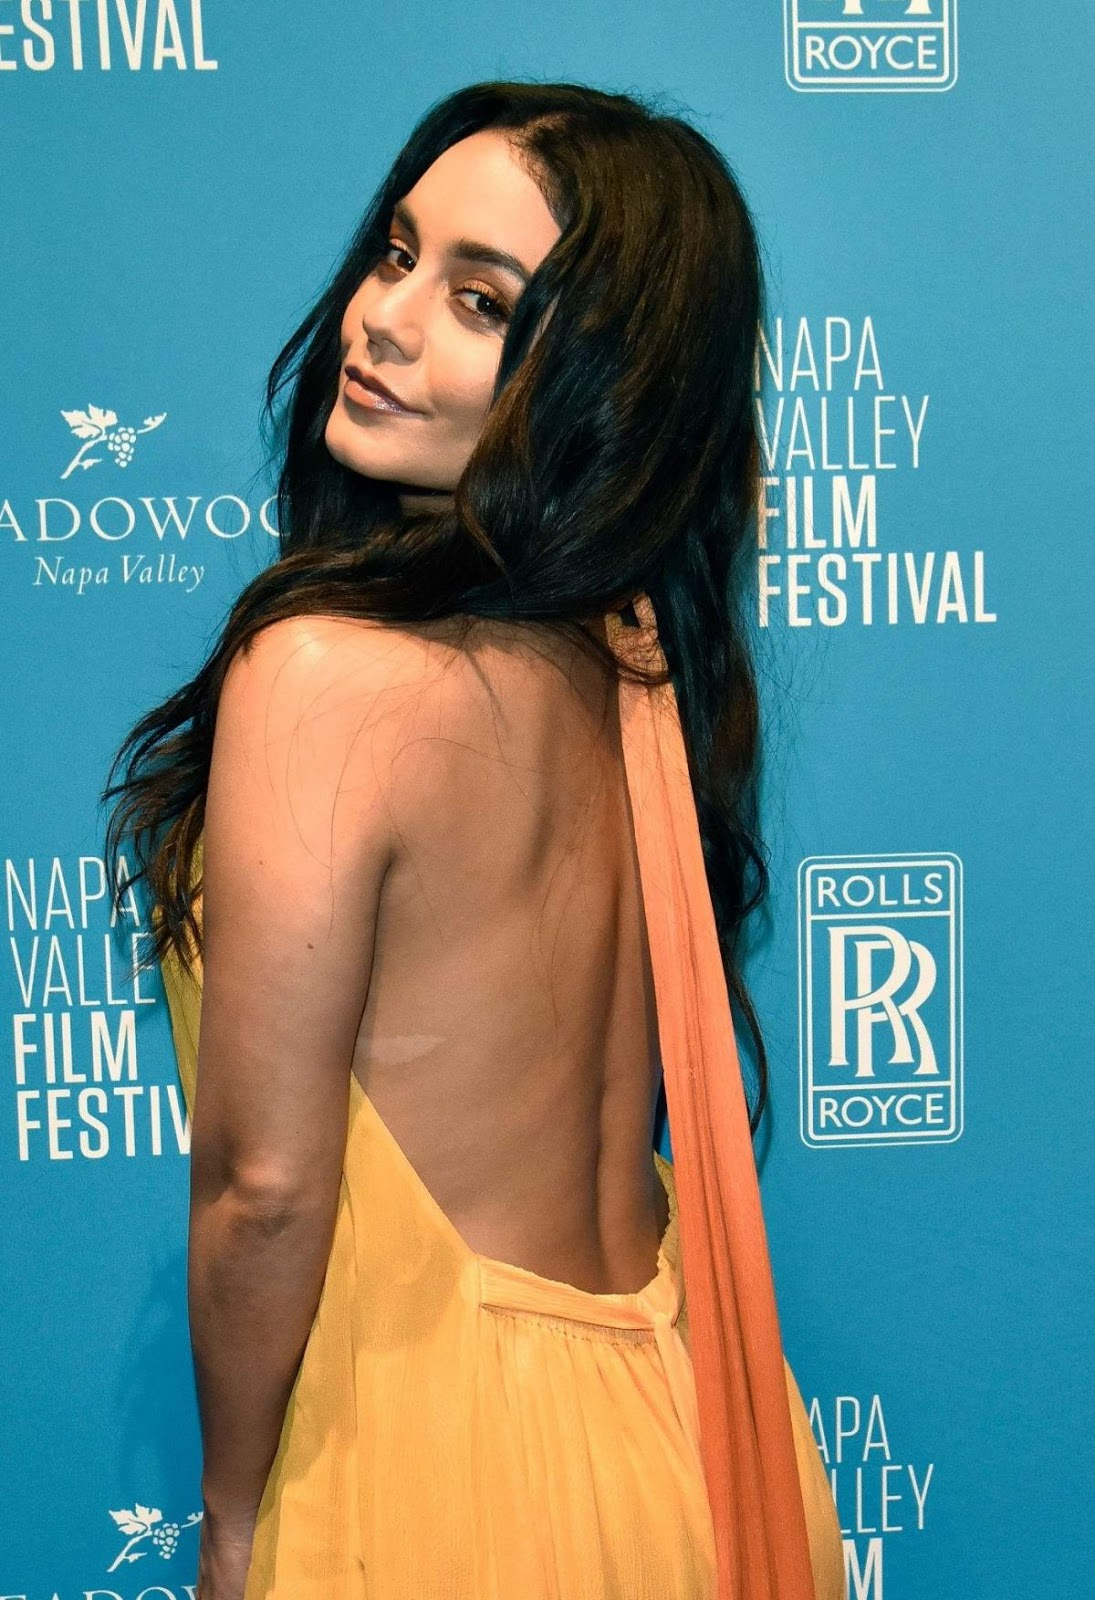 Vanessa Hudgens goes backless at the Napa Valley Film Festival